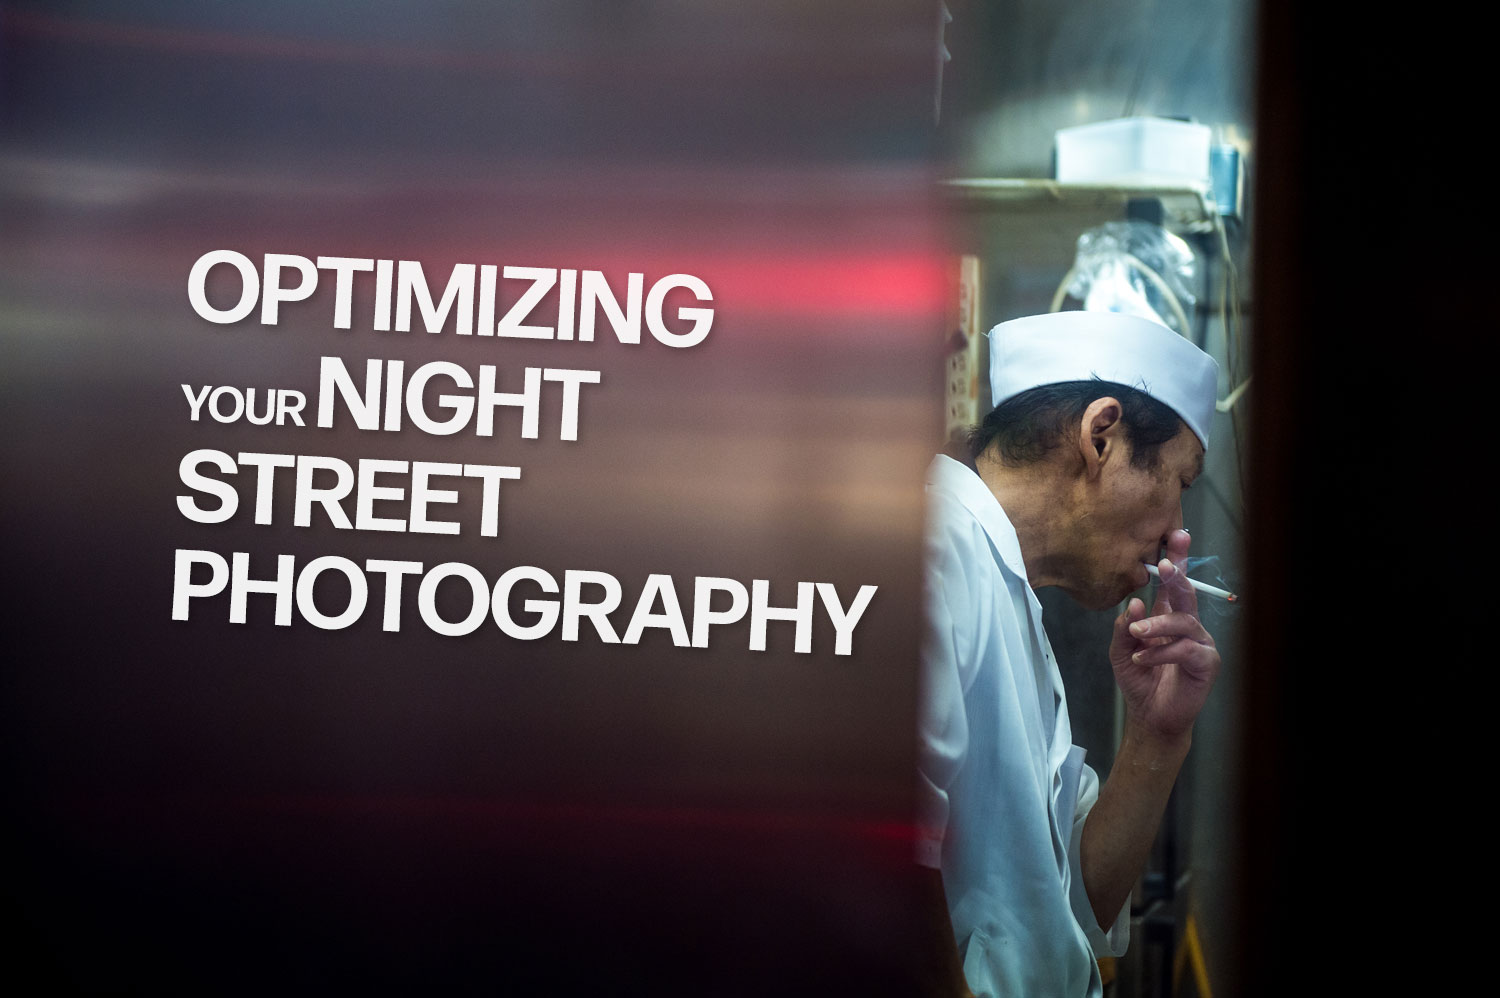 Optimizing Your Night Street Photography